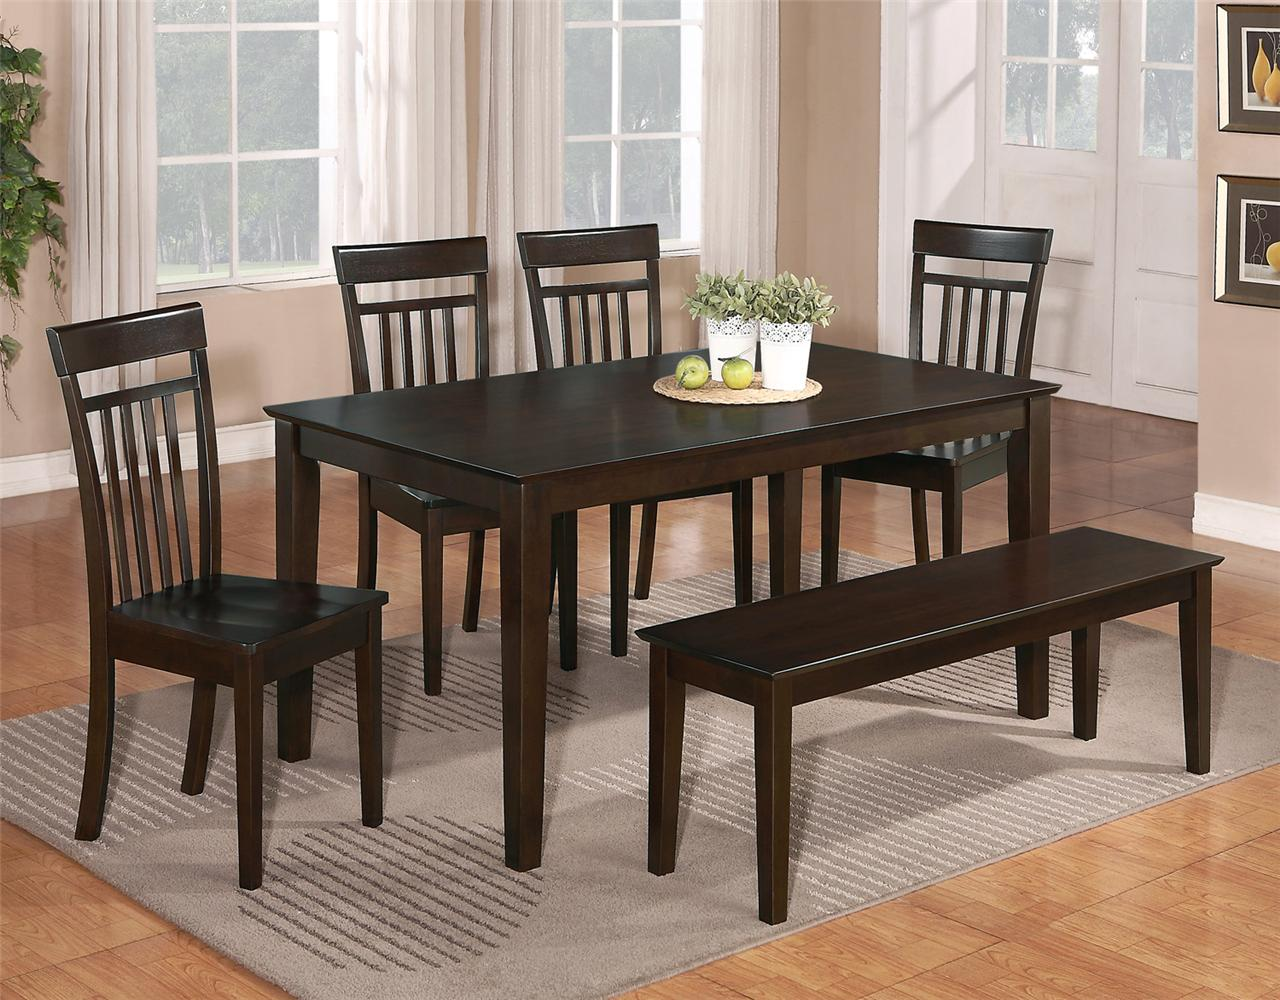 6 pc dinette kitchen dining room set table w 4 wood chair for Kitchen table set 6 chairs